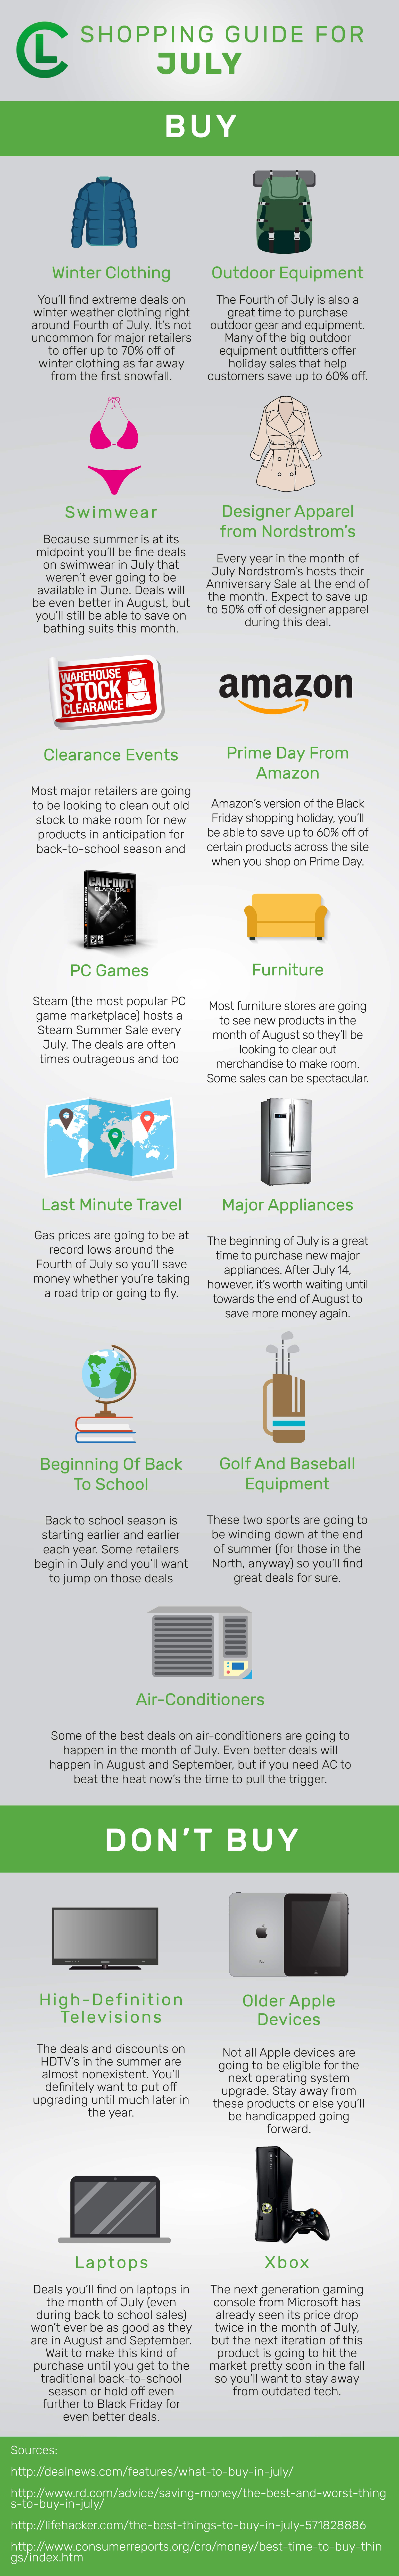 Shopping Guide For July Infographic